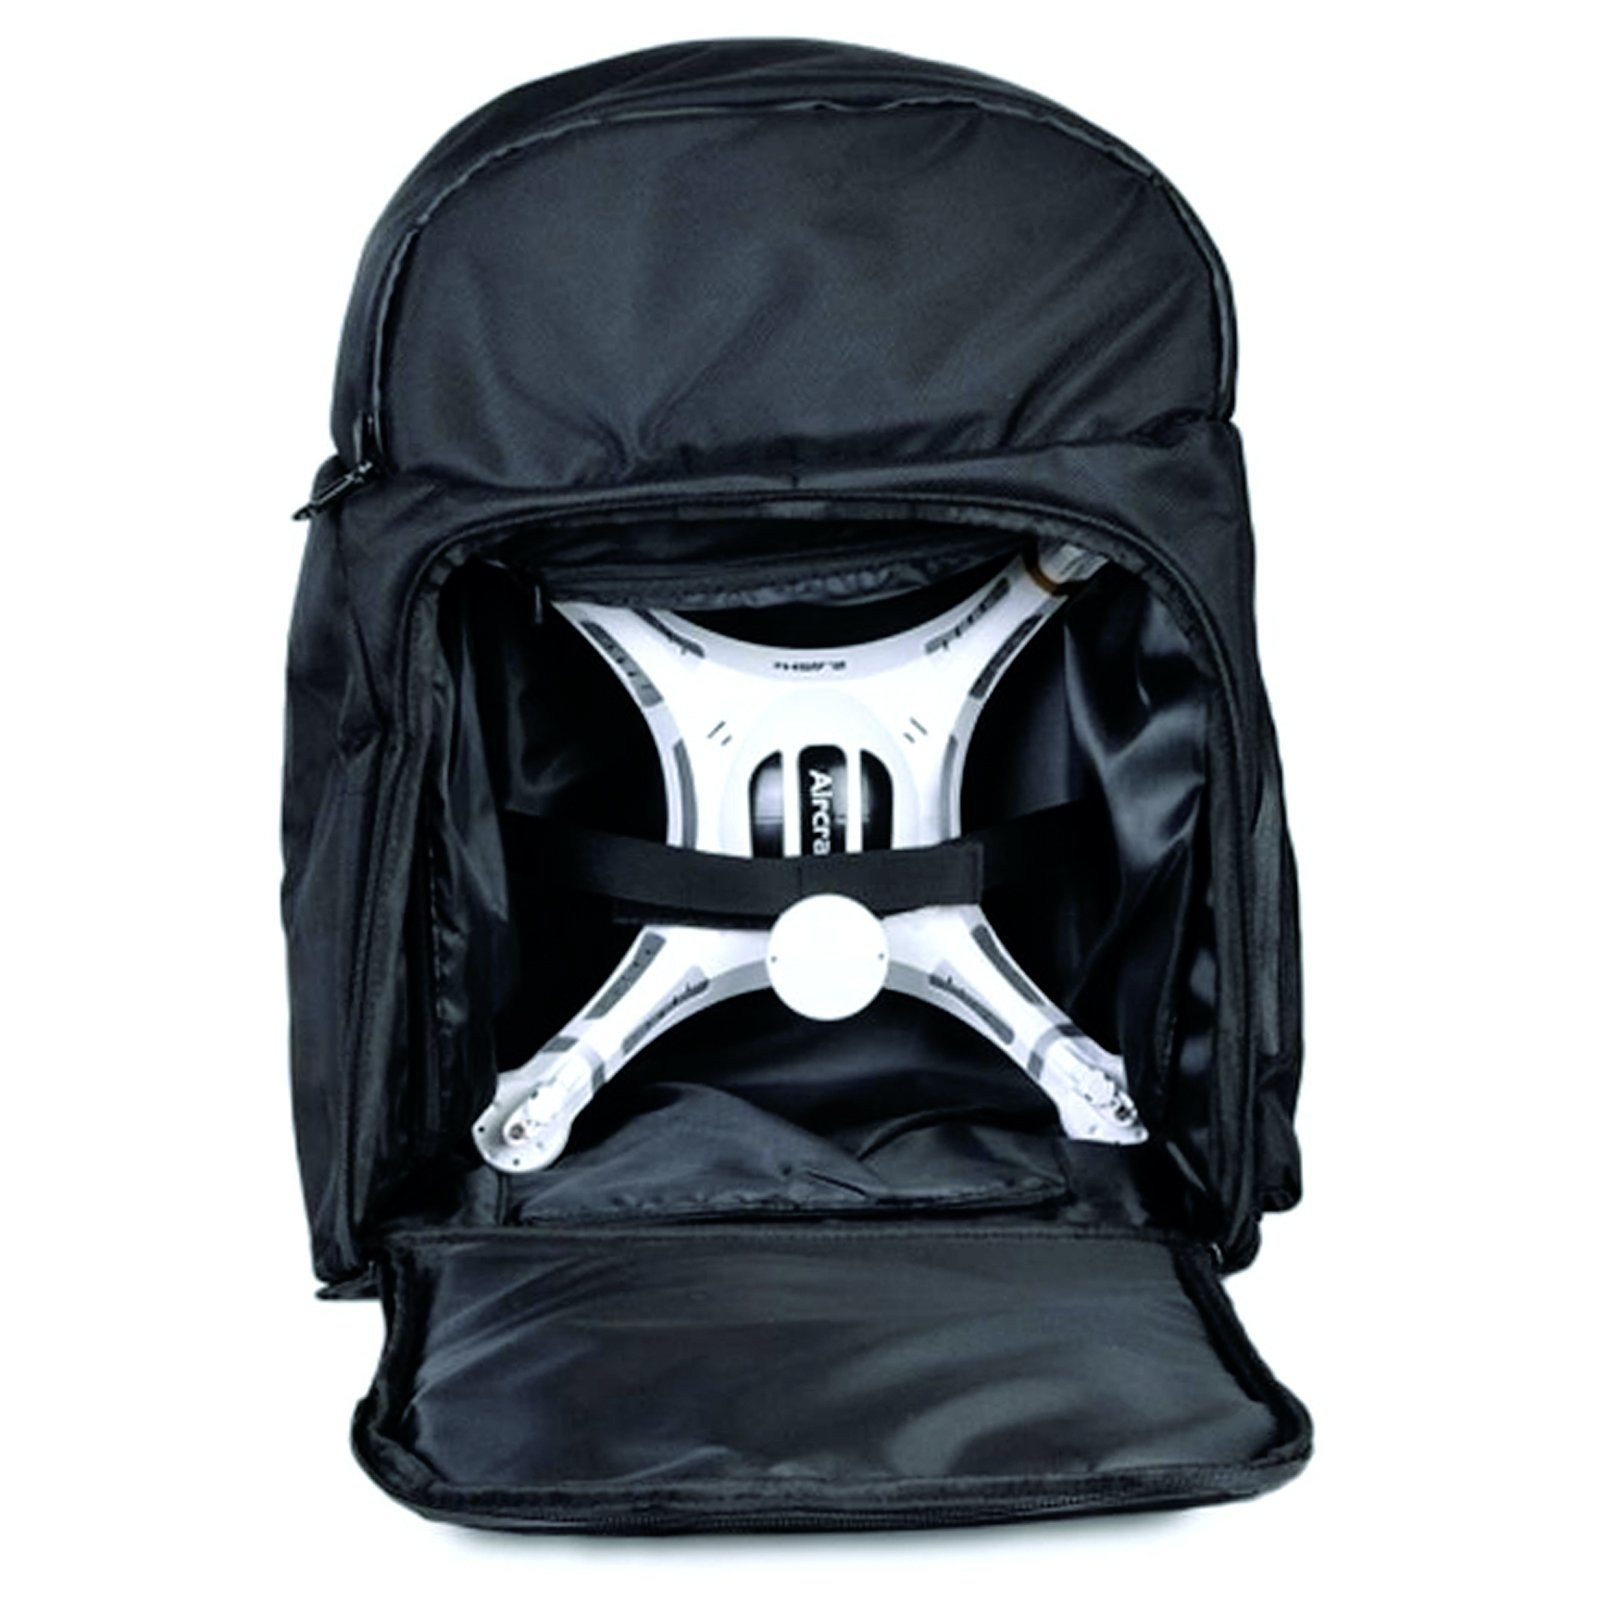 Quadcopter Drone Backpack Water Resistant Carry Bag - Black